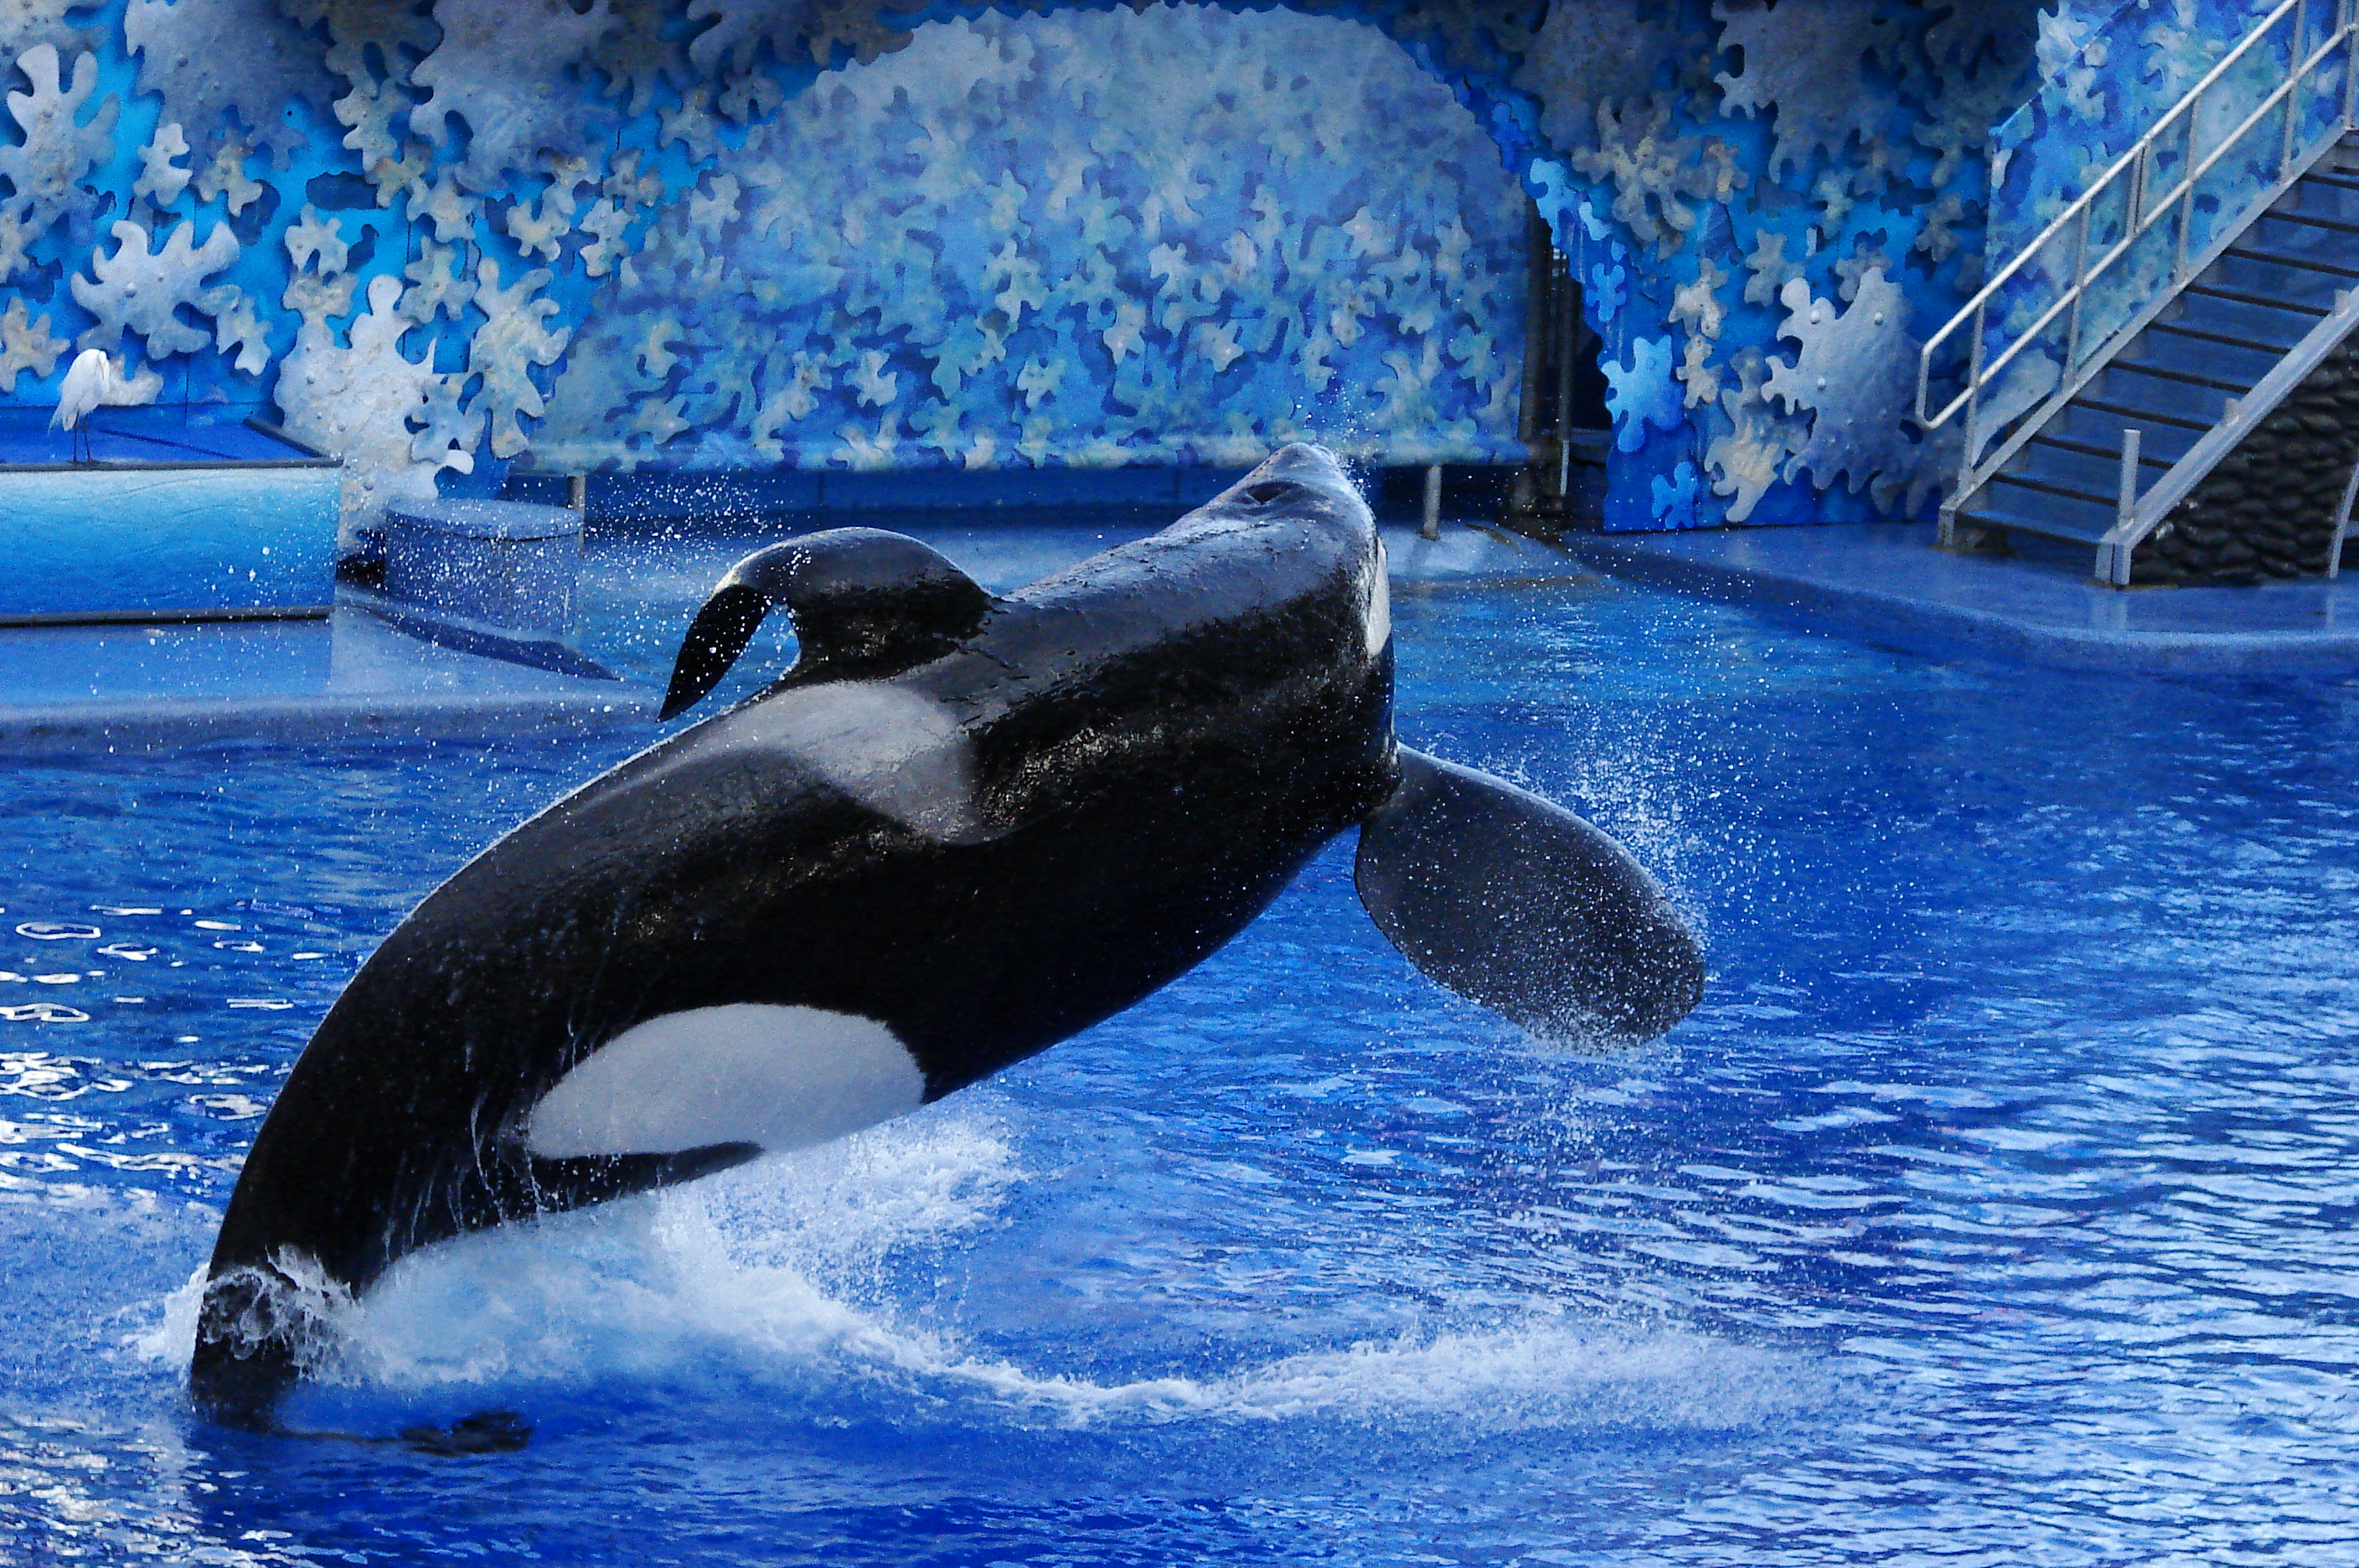 It's time for a change - SeaWorld